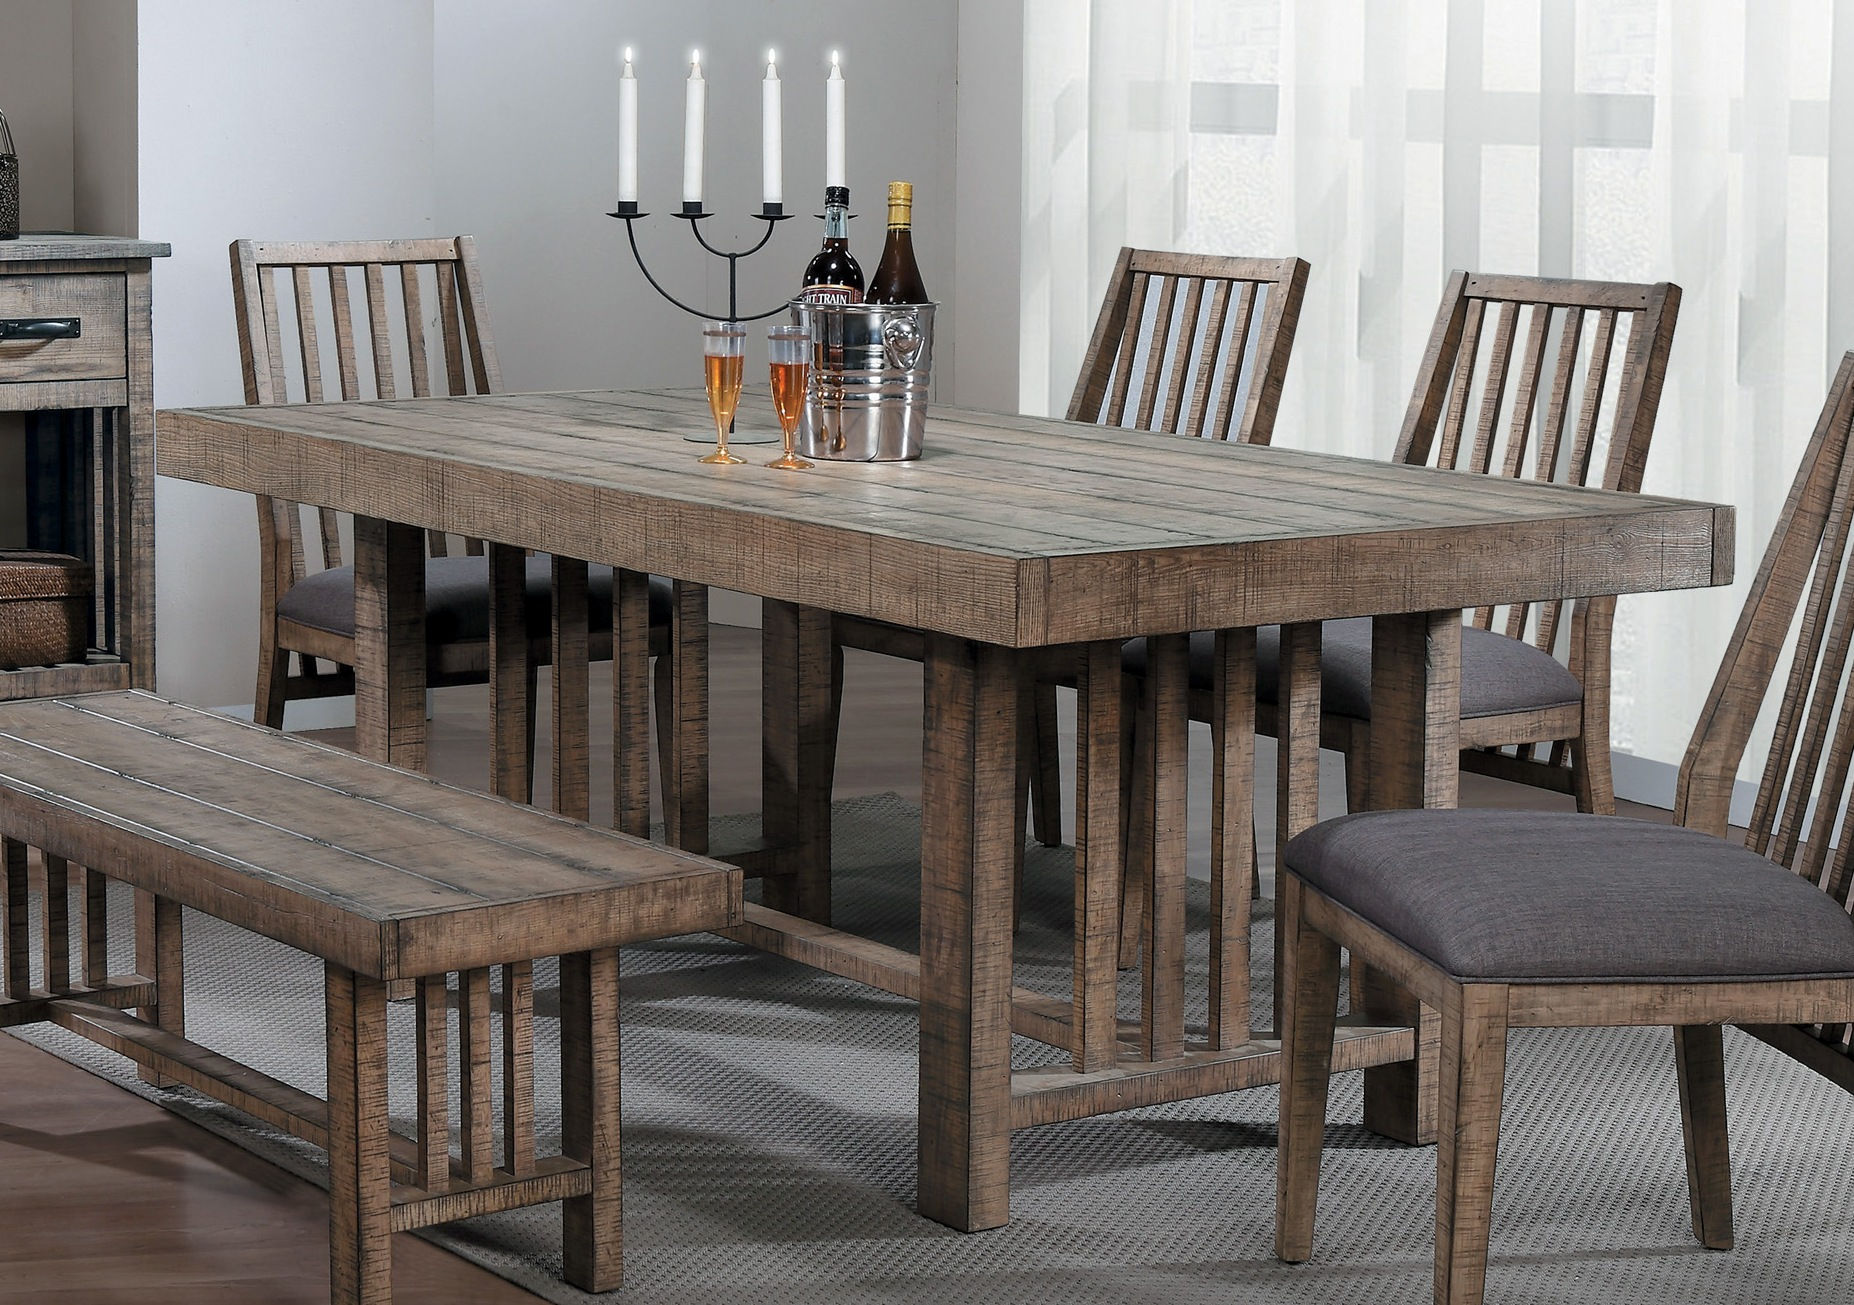 Home Elegance Co Distressed Wood Dining Table Click To Enlarge